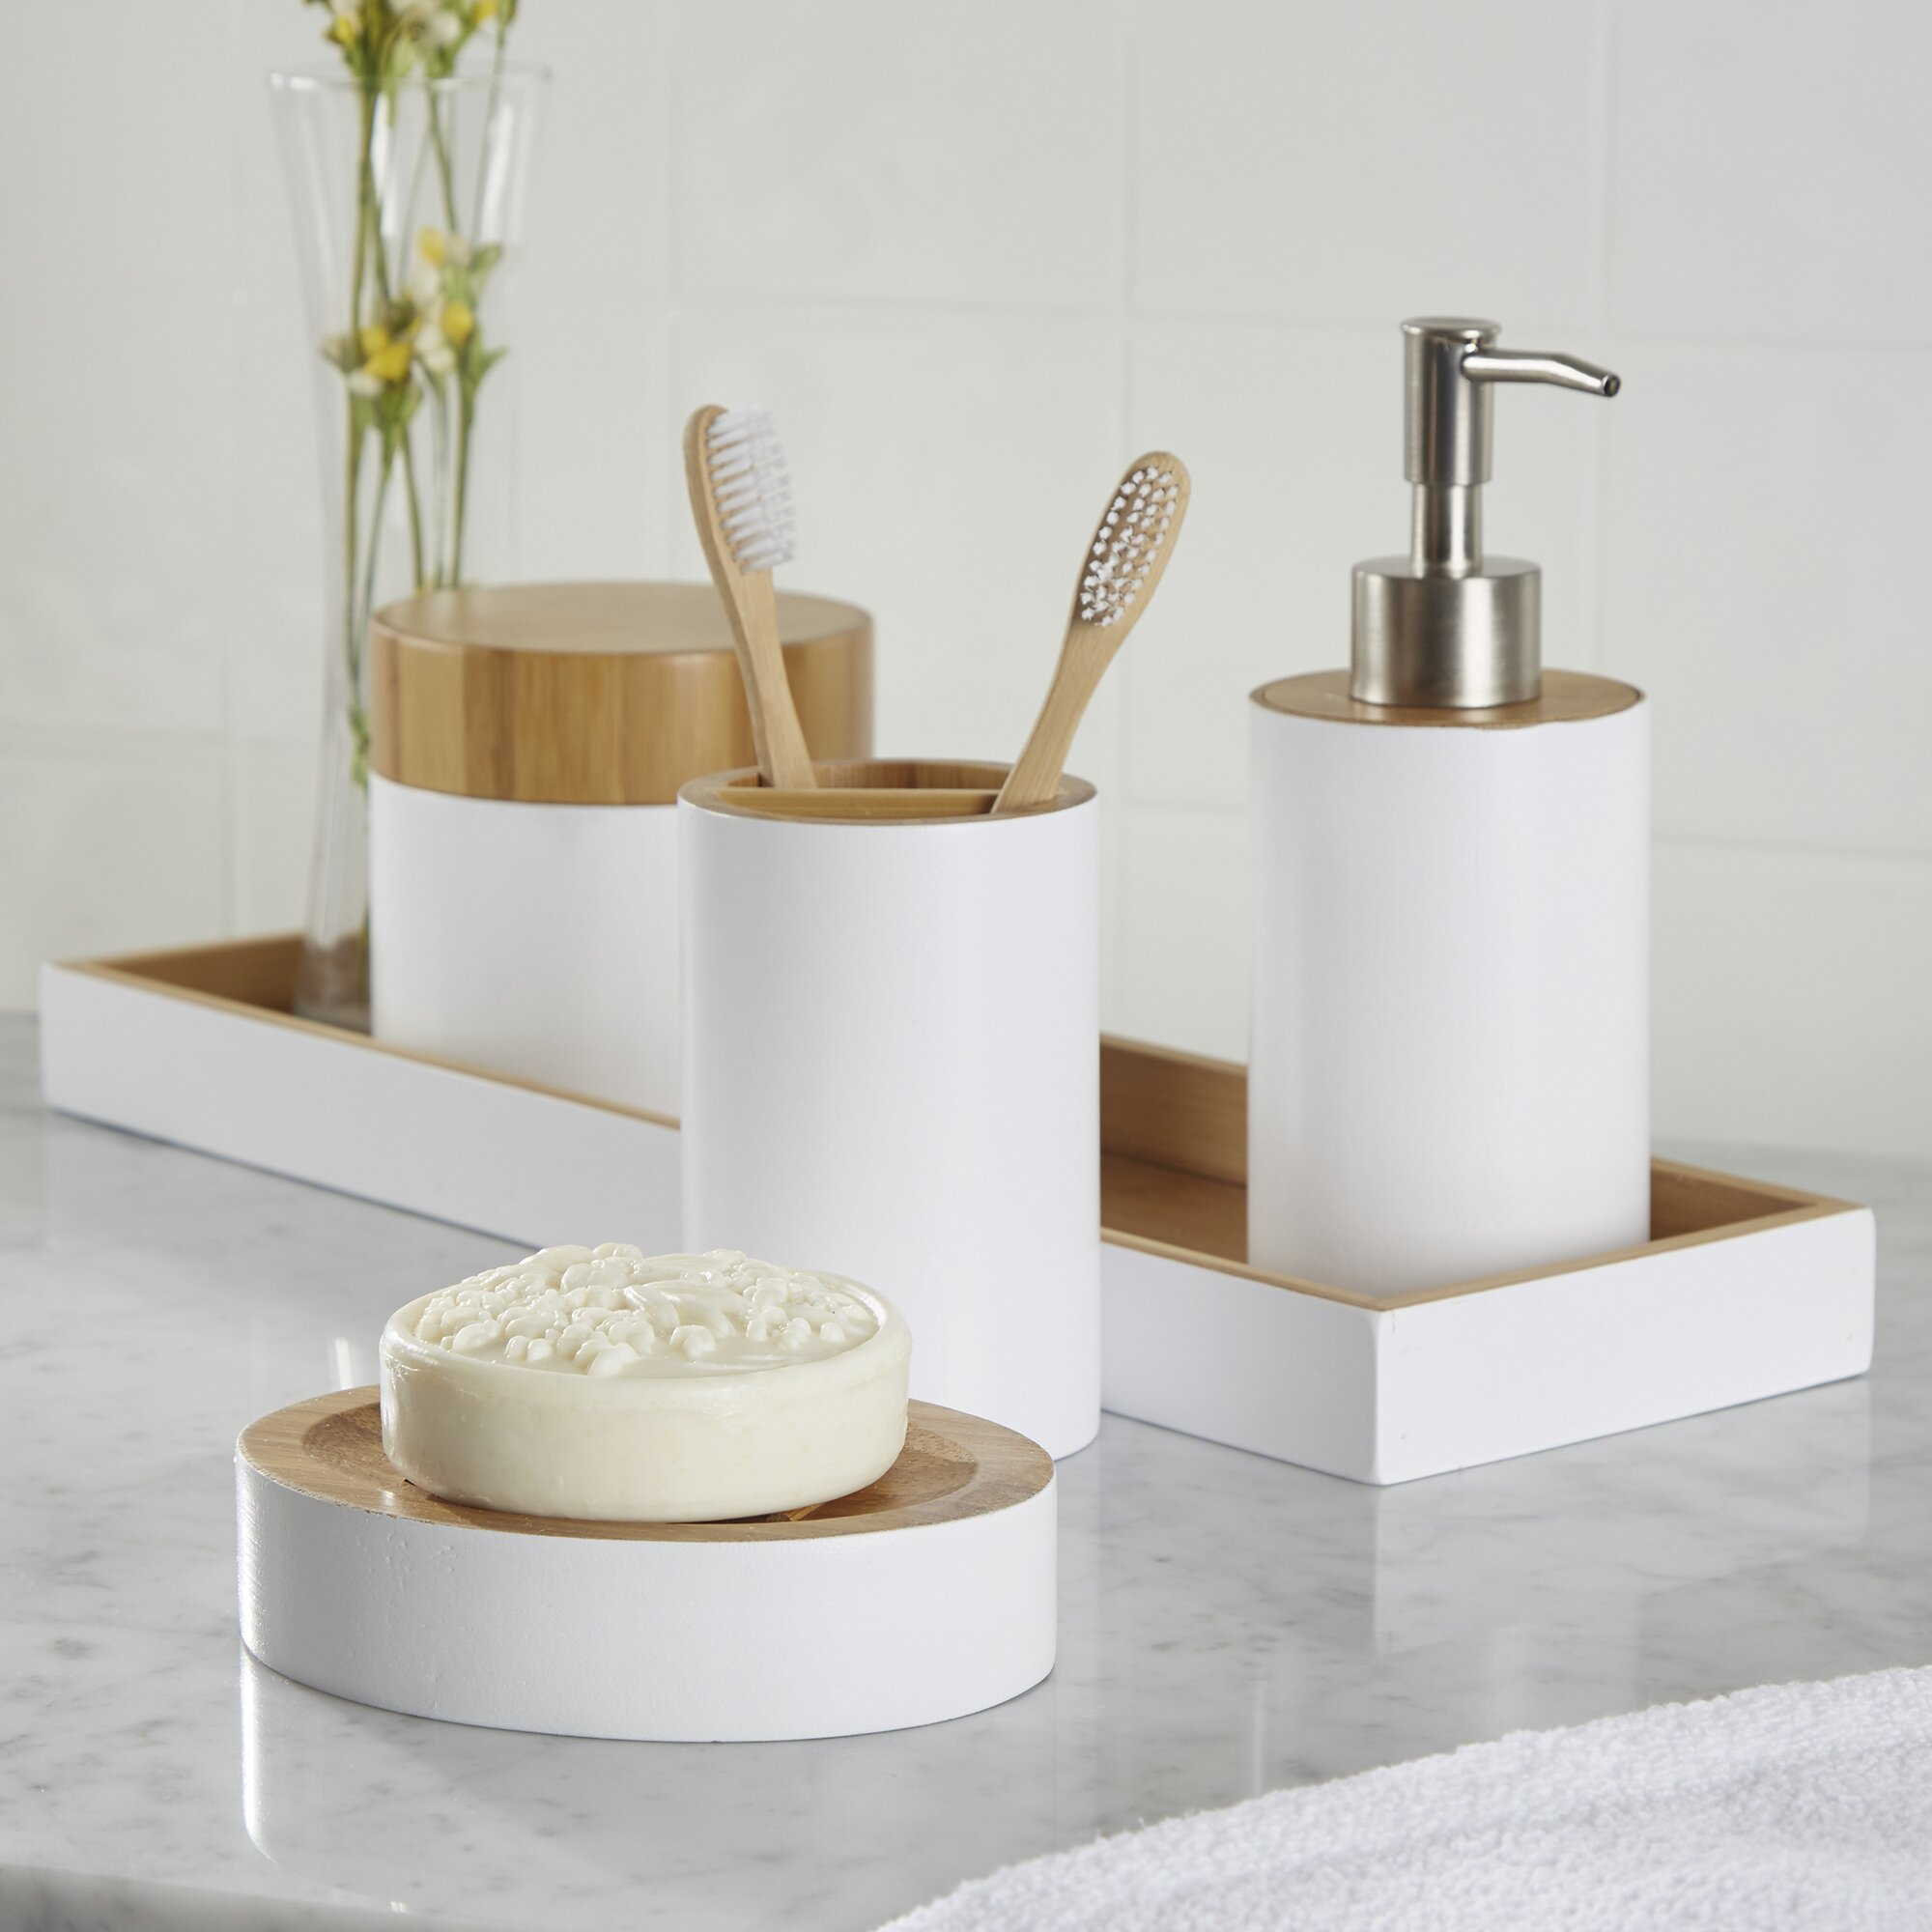 Rousseau 6 piece bathroom accessory set reviews allmodern for Bathroom utensils